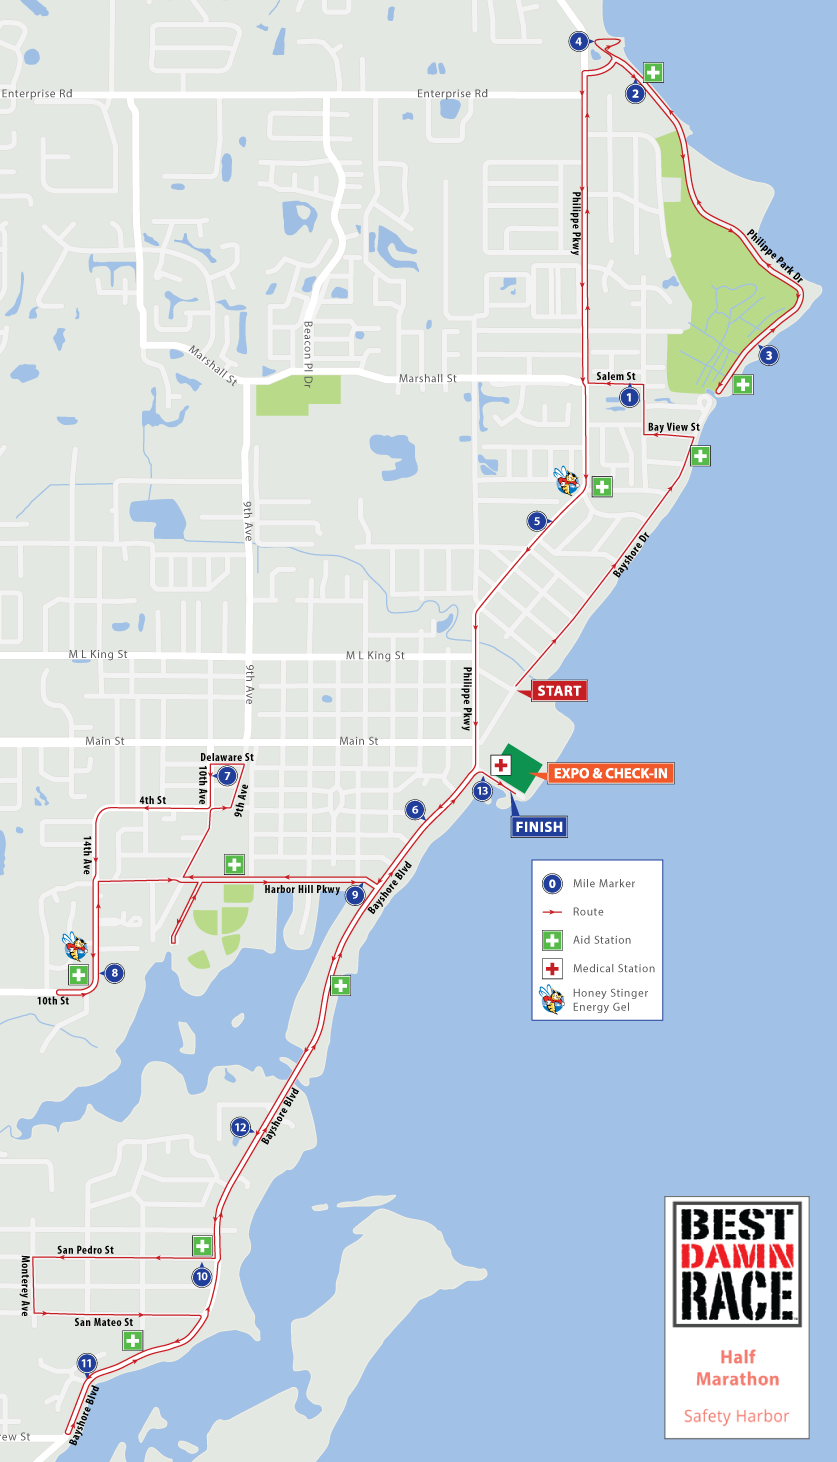 Safety Harbor, FL - Best Damn Race - Half Marathon Map 2017